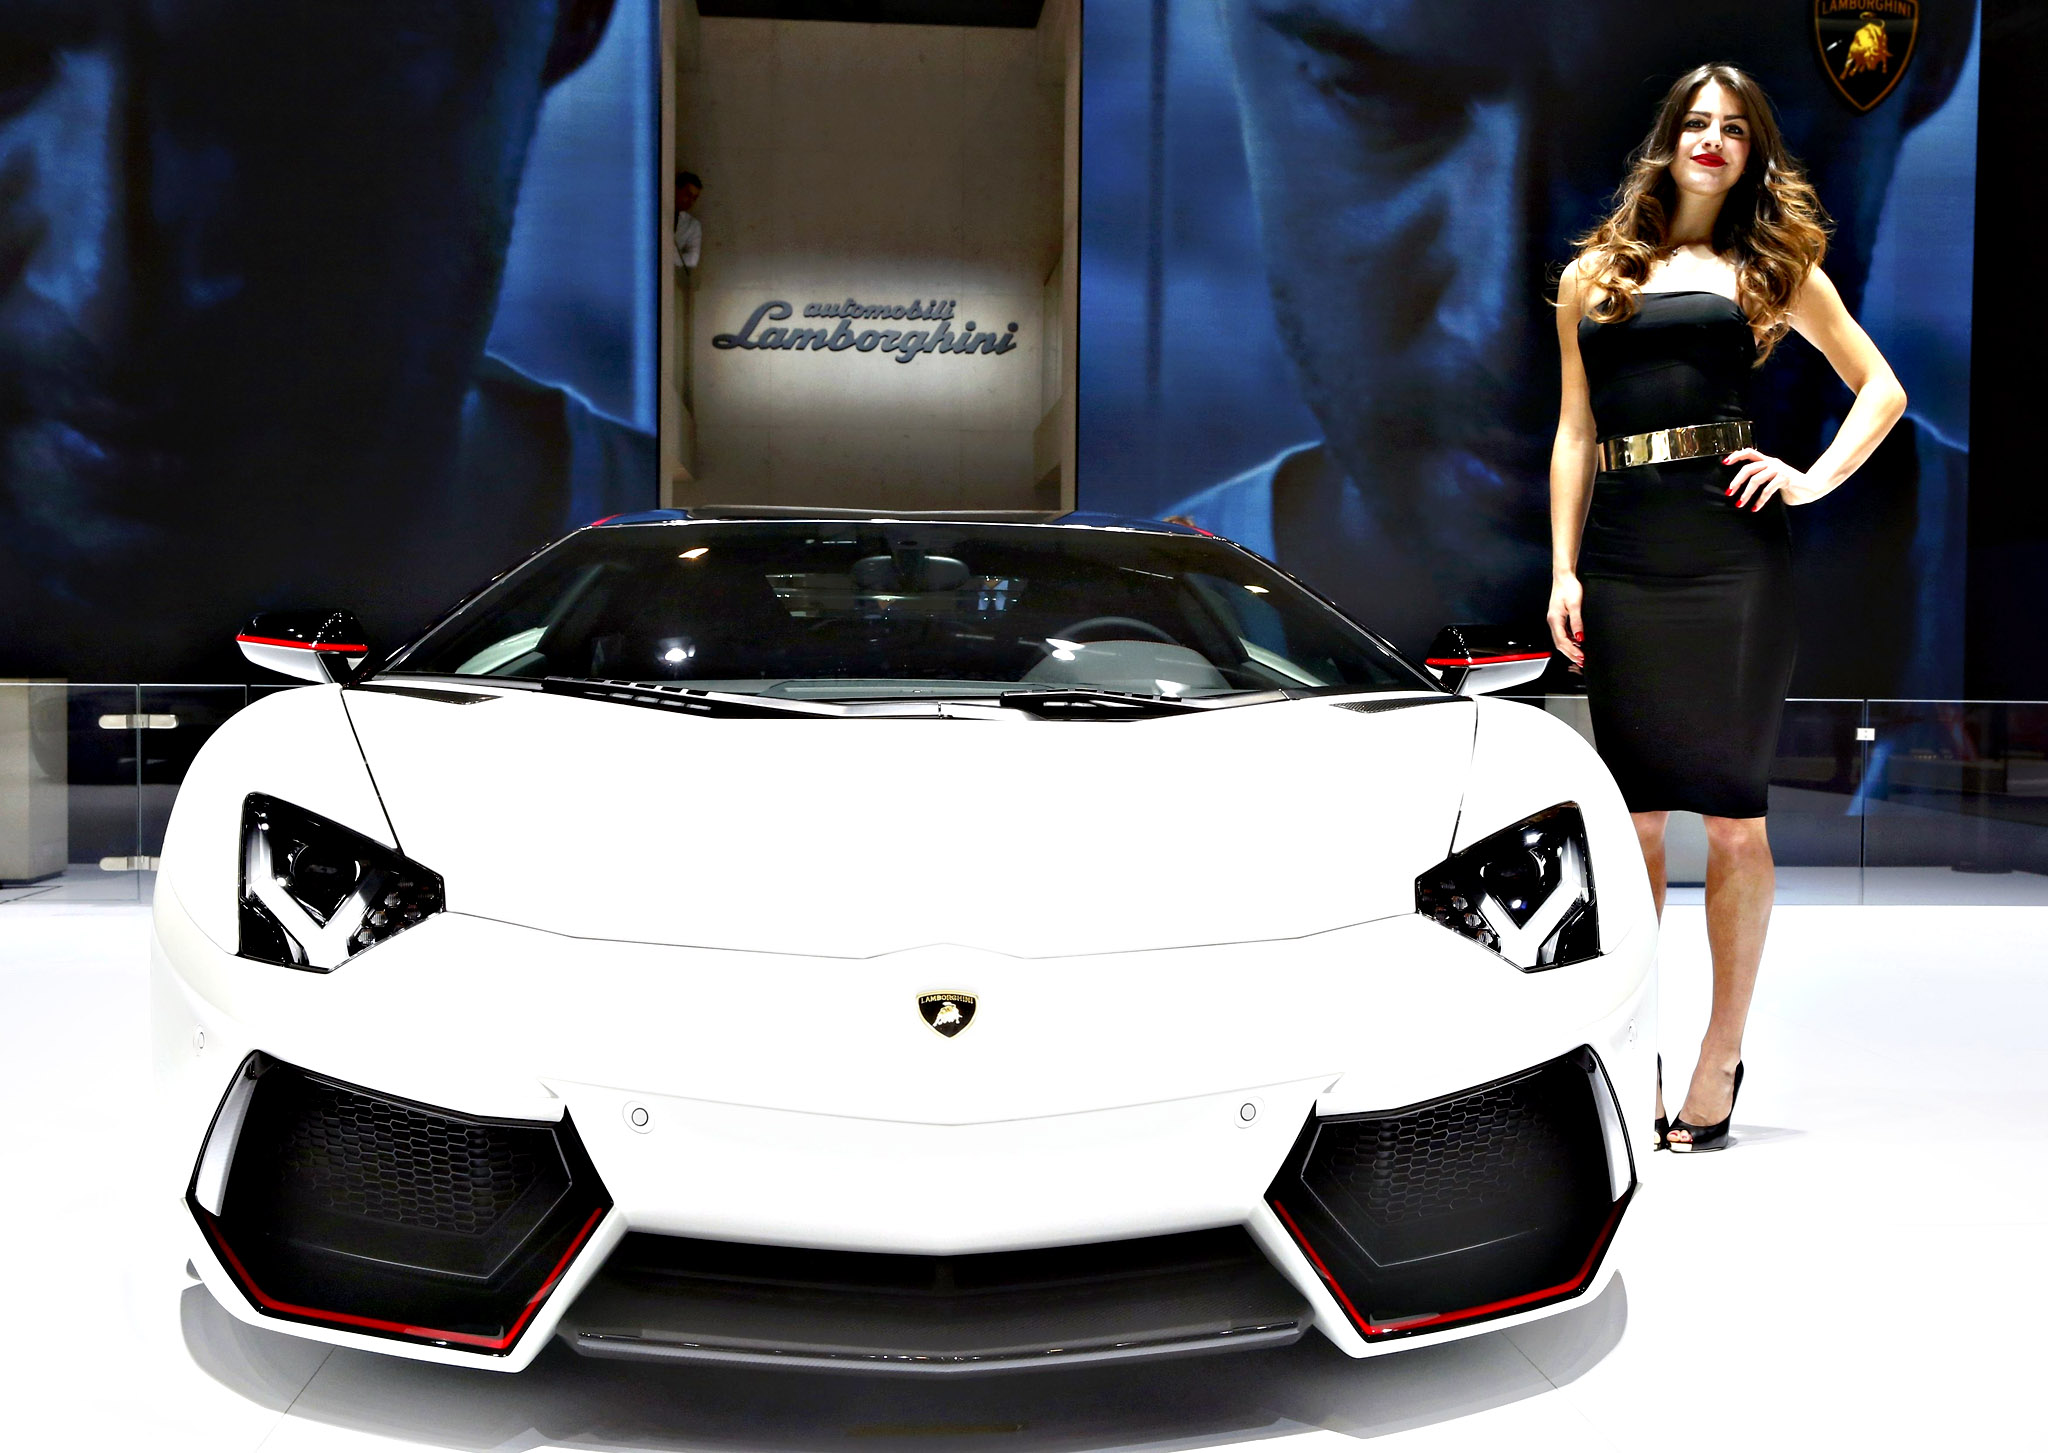 A model poses next to a Lamborghini Aventador LP 700-4 during the second press day ahead of the 85th International Motor Show in Geneva March 4, 2015.